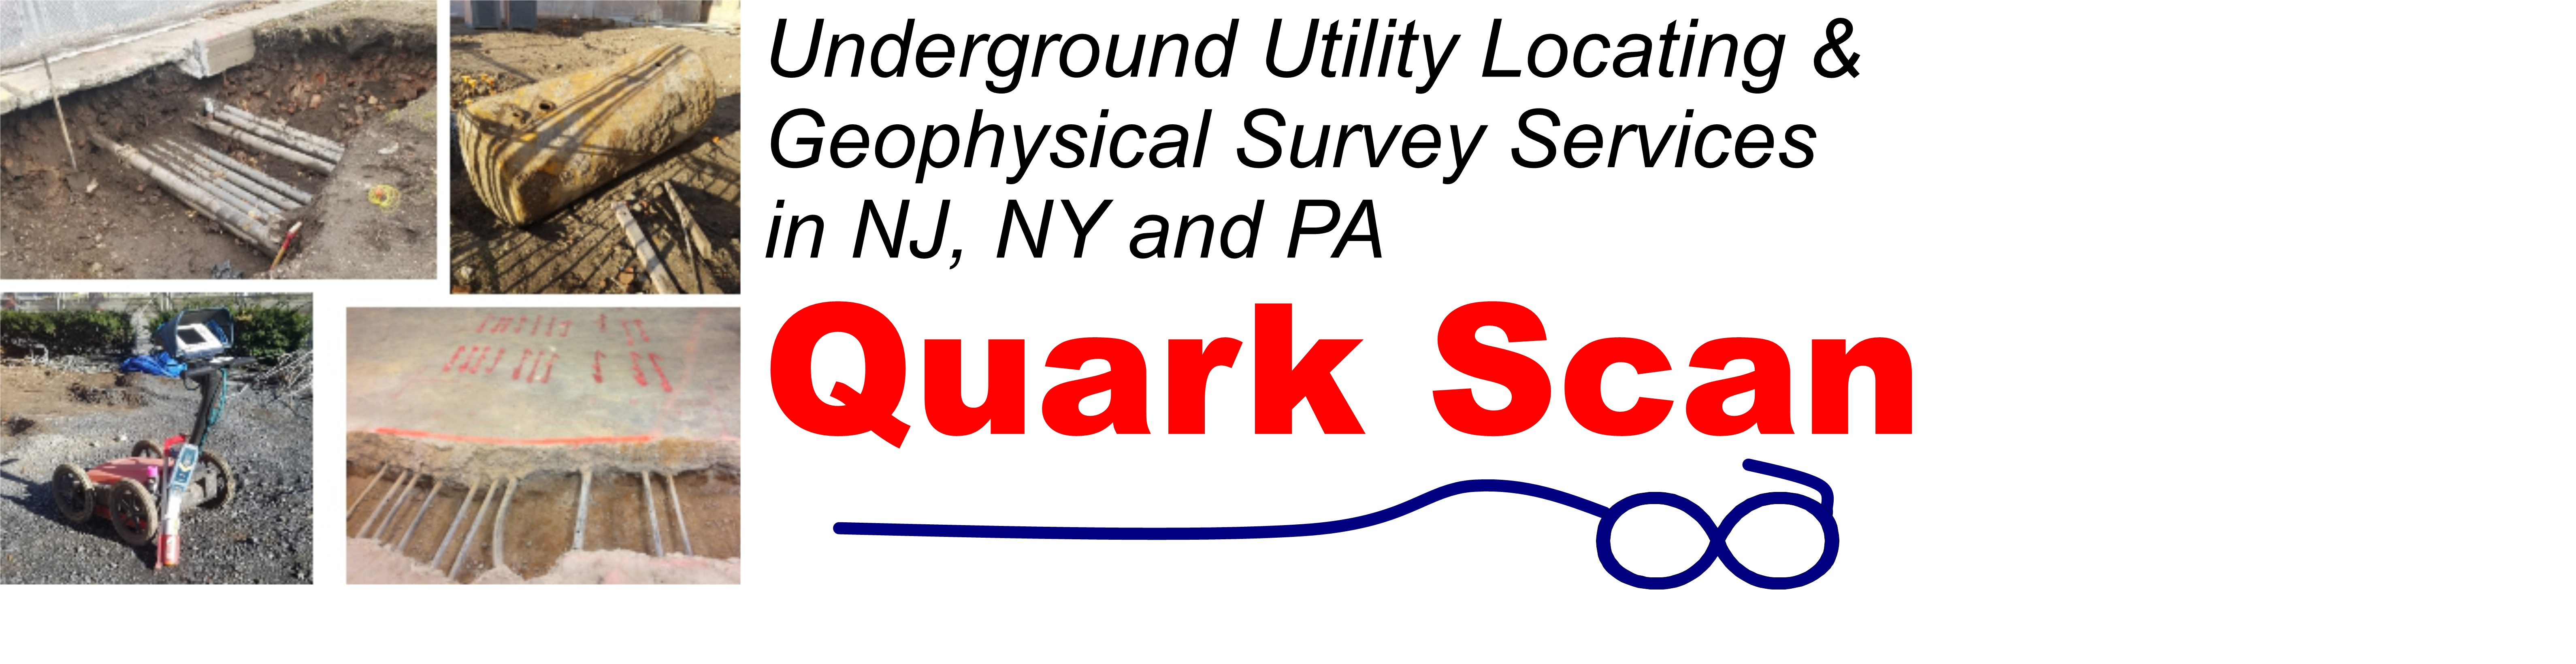 Quark Scan Inc. - underground utility locating and geophysical survey services in NJ NY and PA